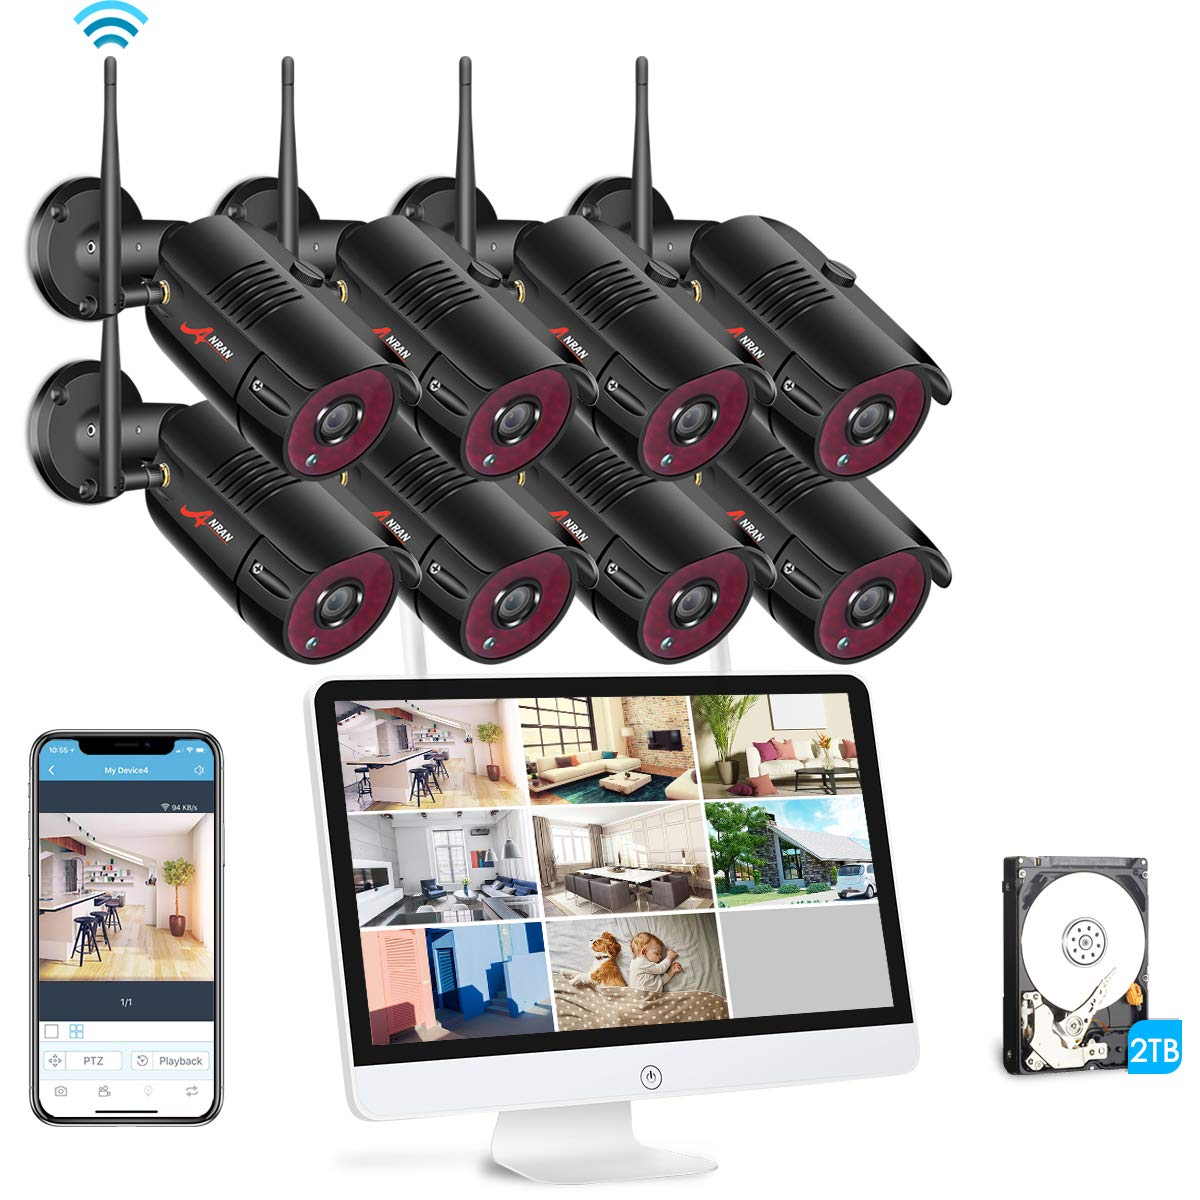 Best Outdoor Wireless Security Camera System With DVR ...